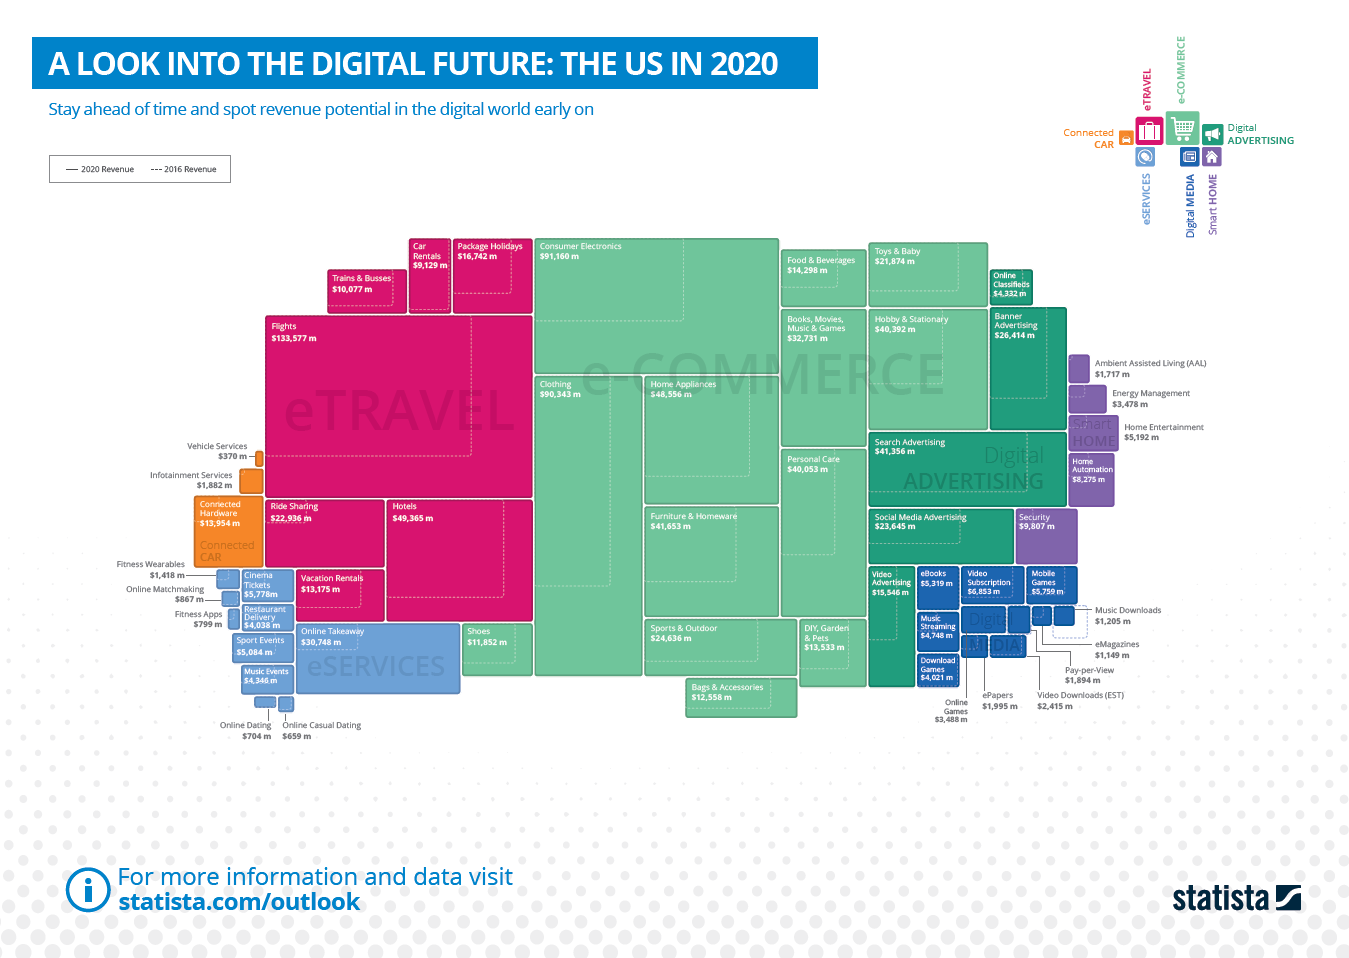 A Look Into The Digital Future: The US in 2020